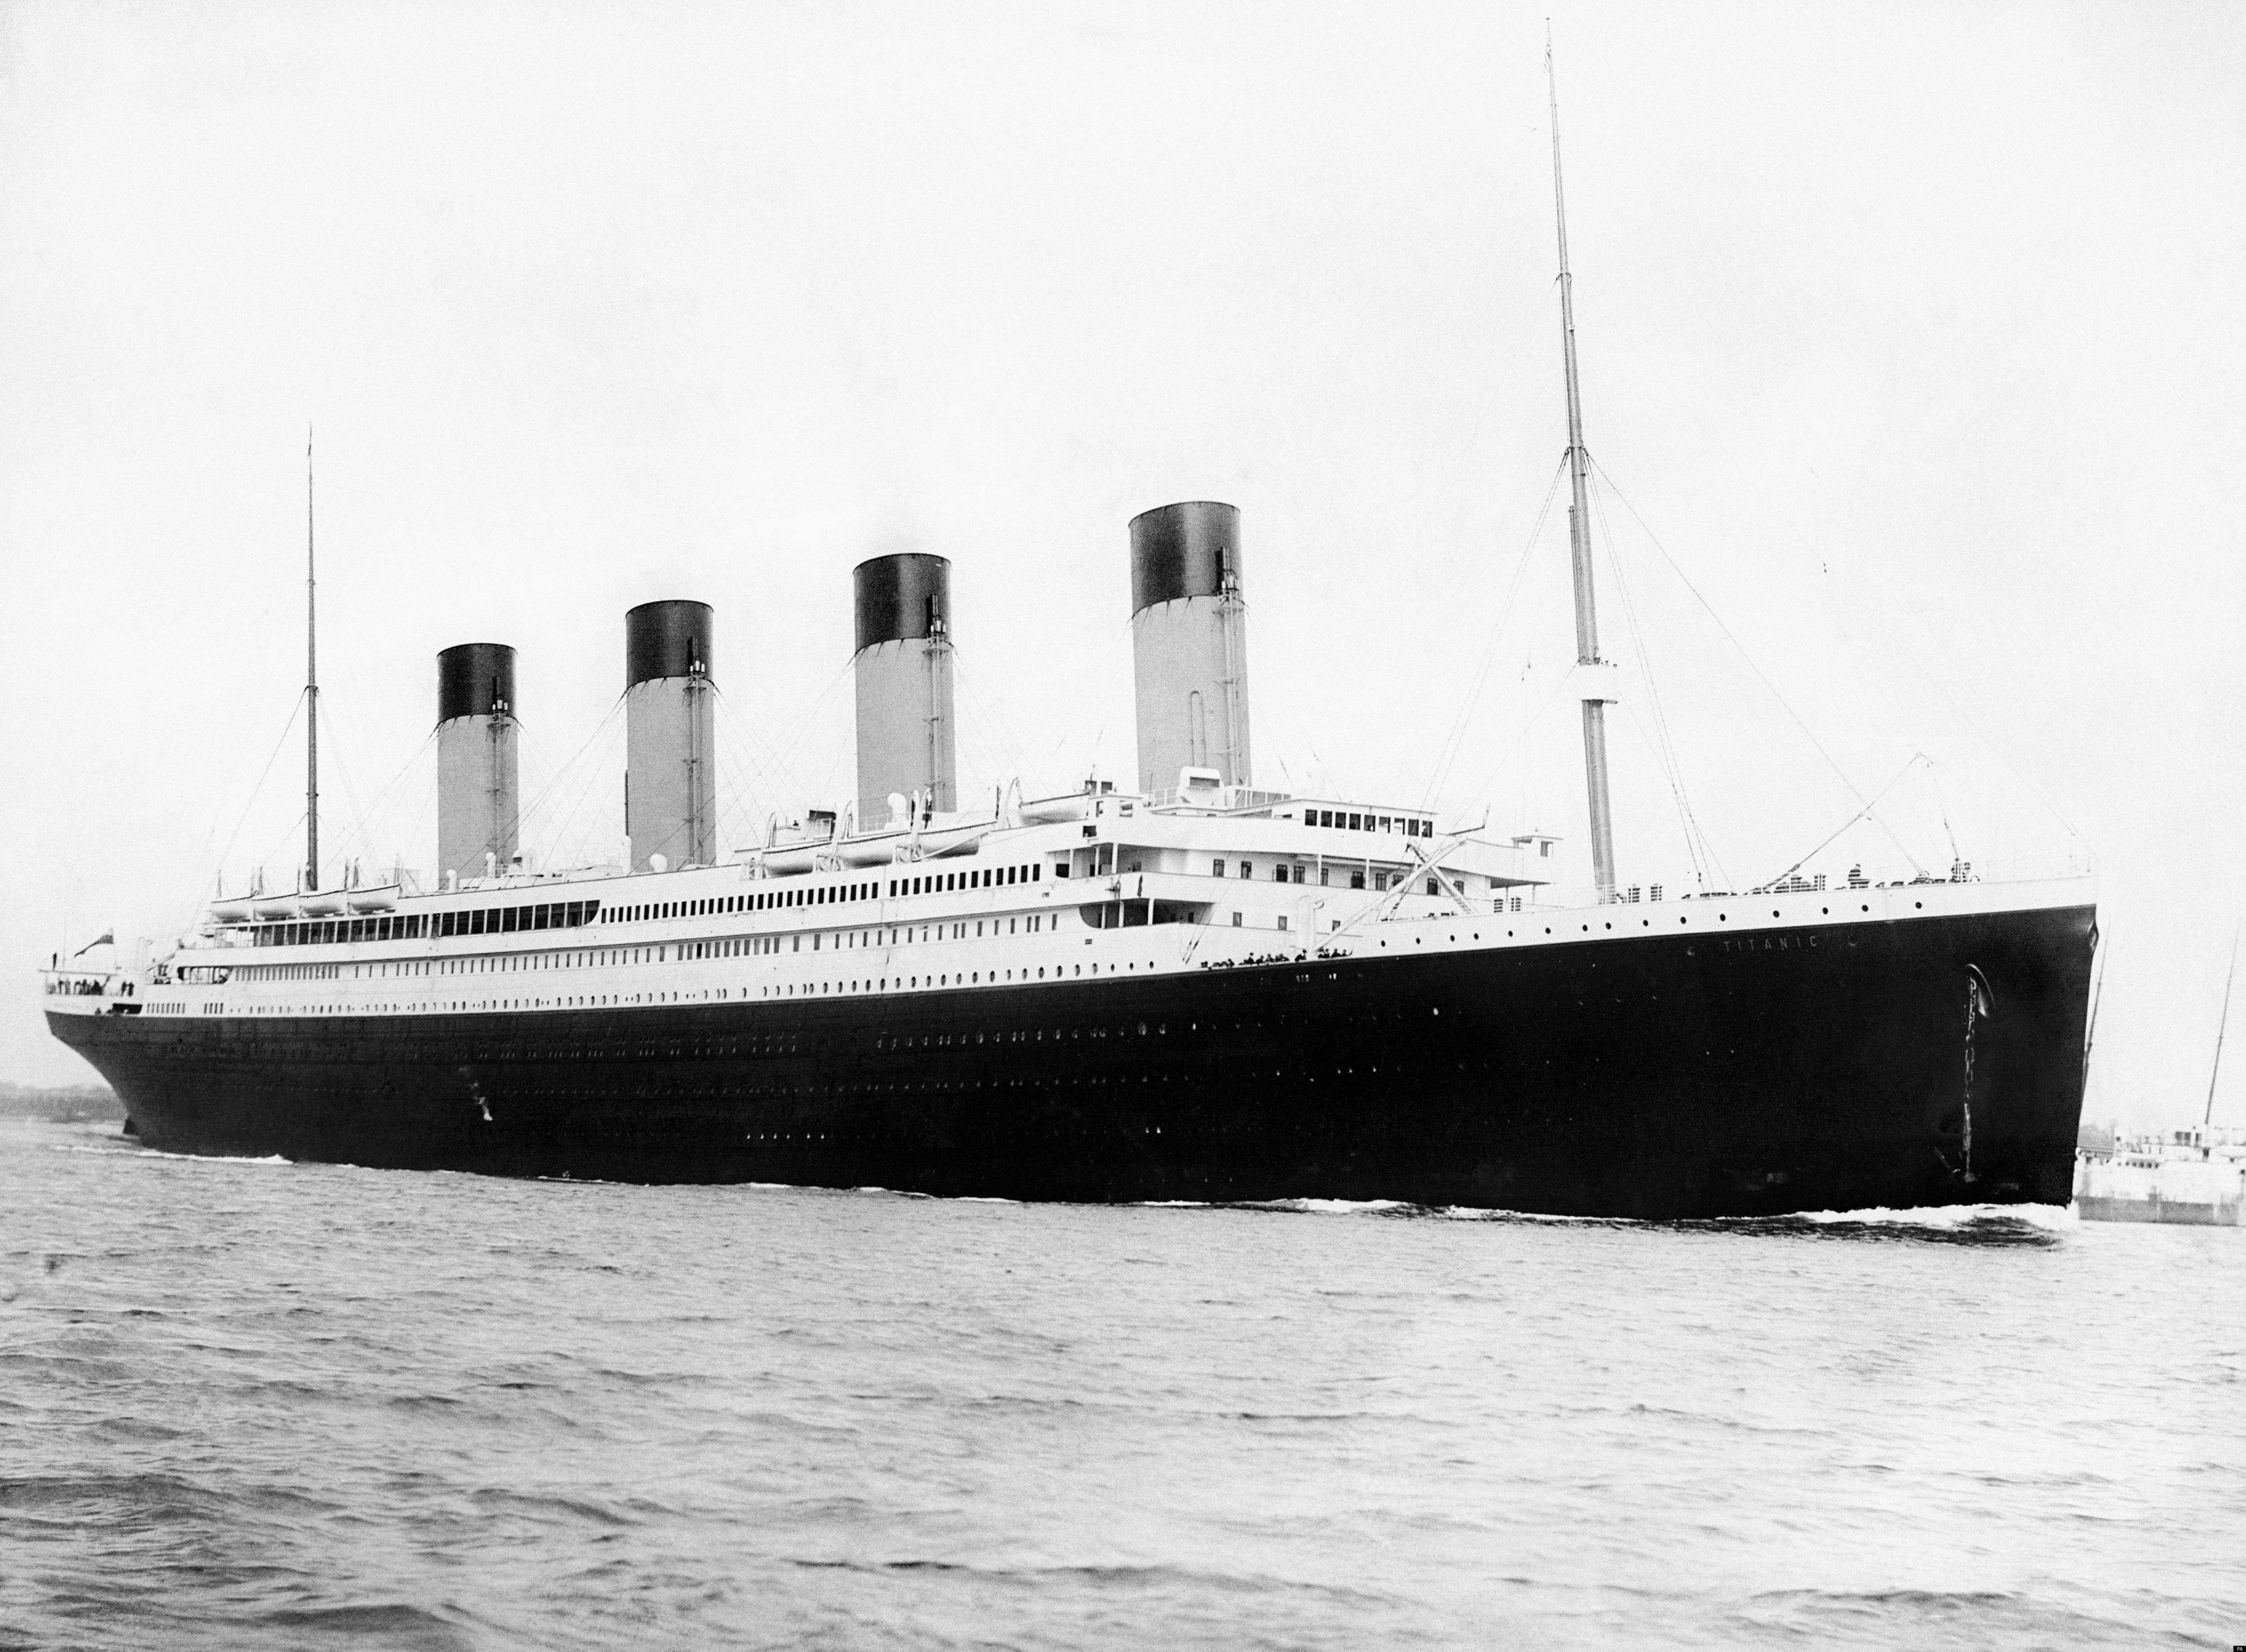 Nearly 105 years after the Titanic sank, two companies have announcedplans to provide deep-sea...